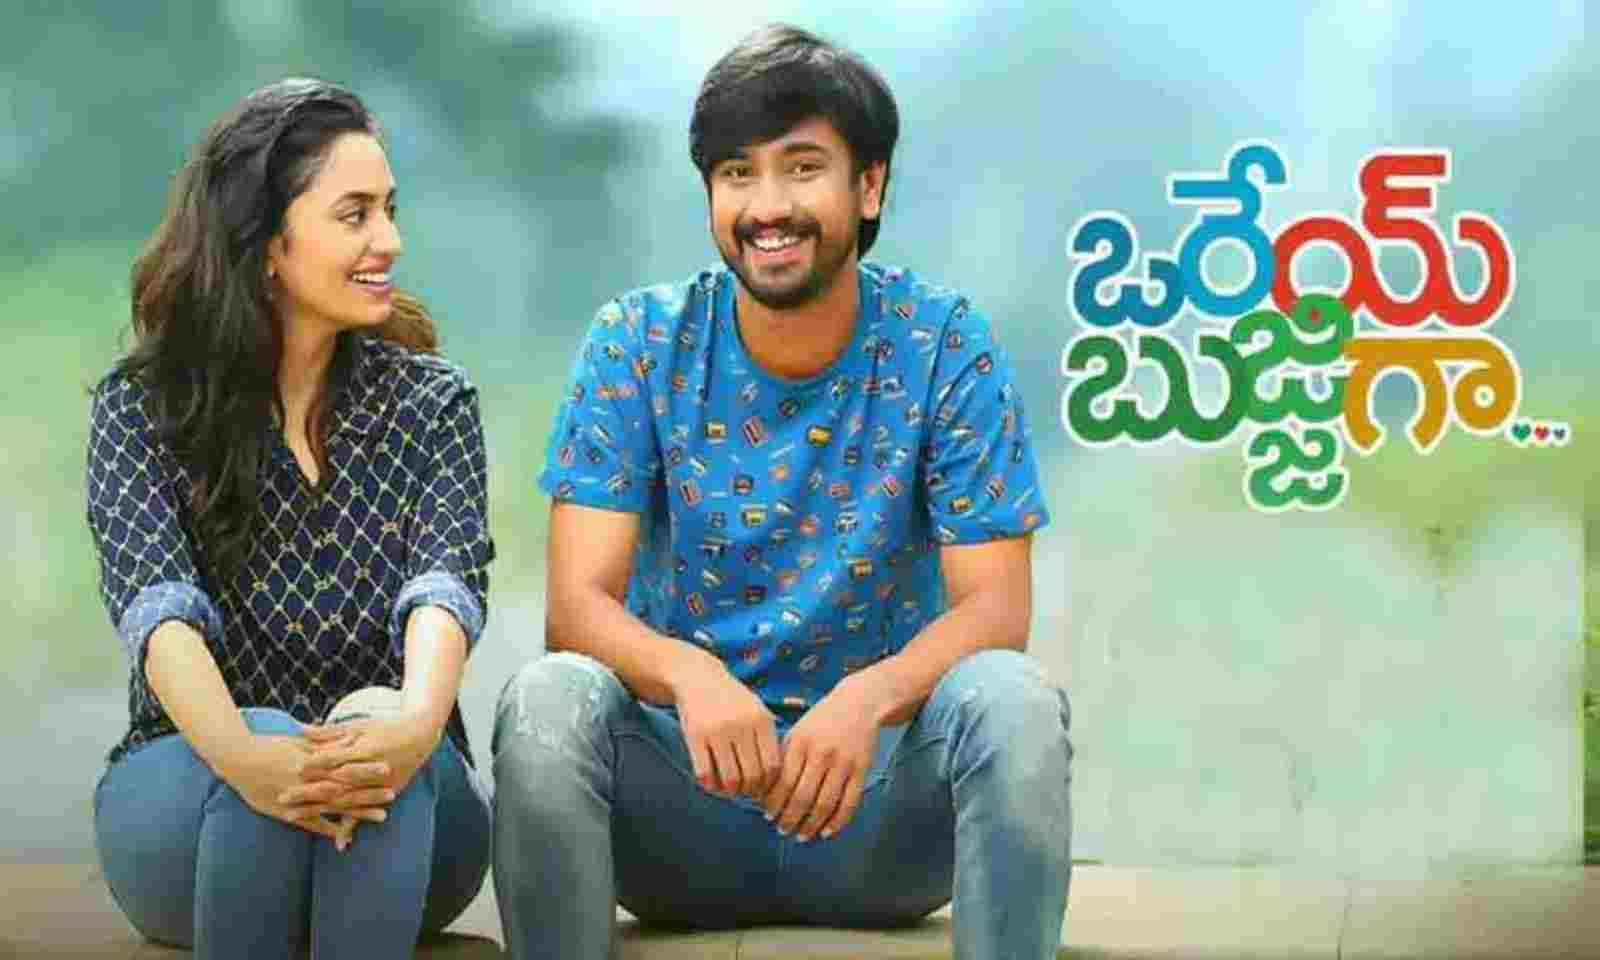 Good comedy movies in telugu in this pandemic OreyBujjiga